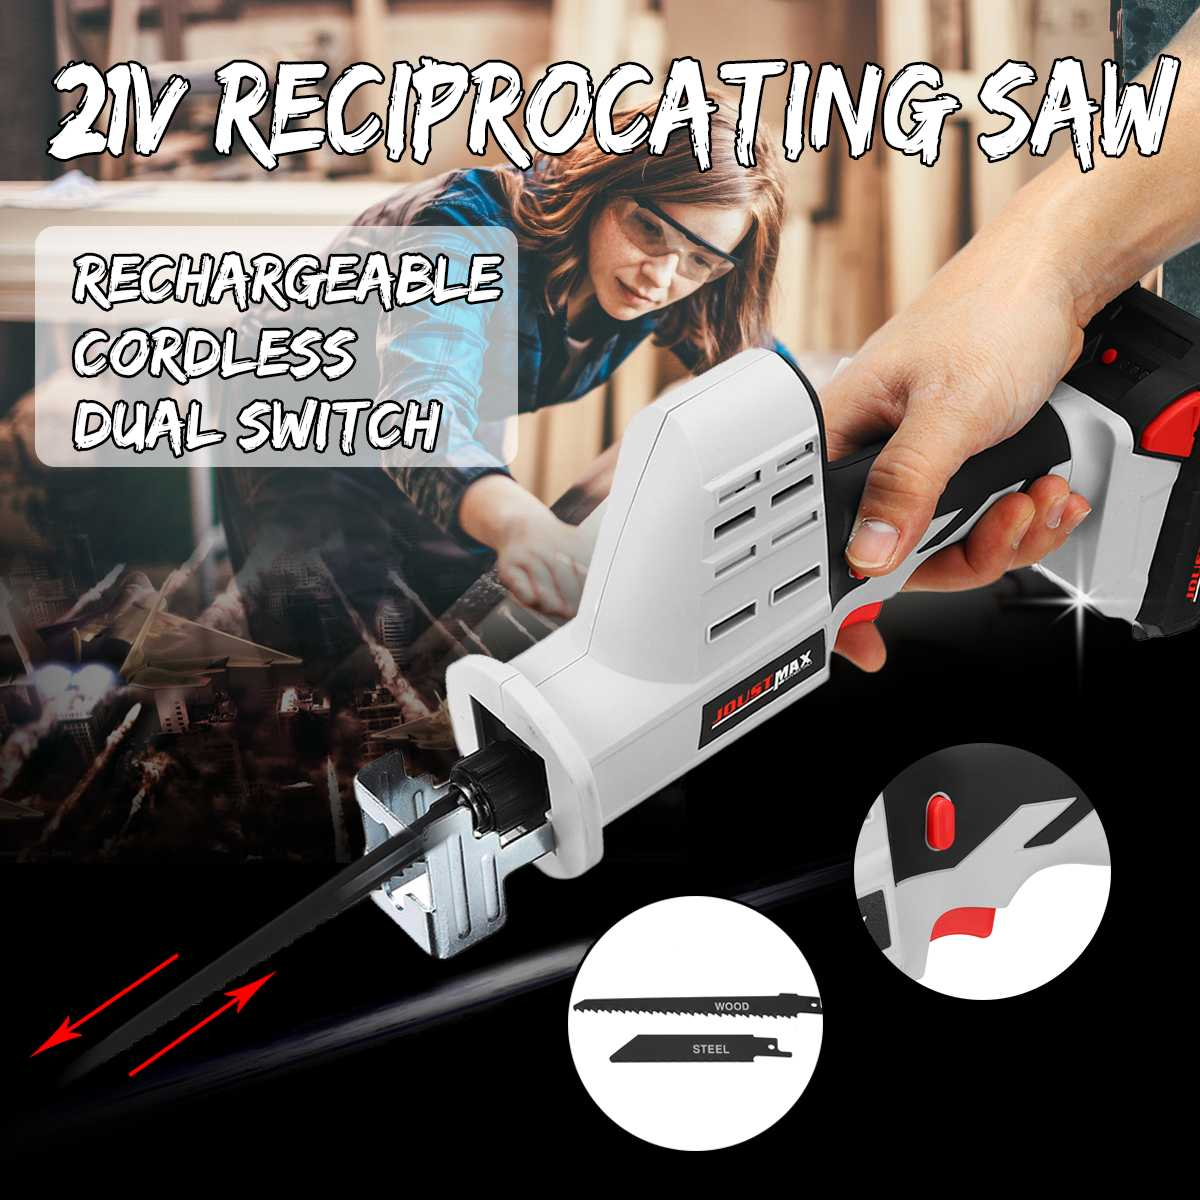 JOUST MAX 21V Cordless Reciprocating Saw Kit Portable Charging Electric Saw Blades Wood Metal Chain Saws Cut Tool with BatteryJOUST MAX 21V Cordless Reciprocating Saw Kit Portable Charging Electric Saw Blades Wood Metal Chain Saws Cut Tool with Battery